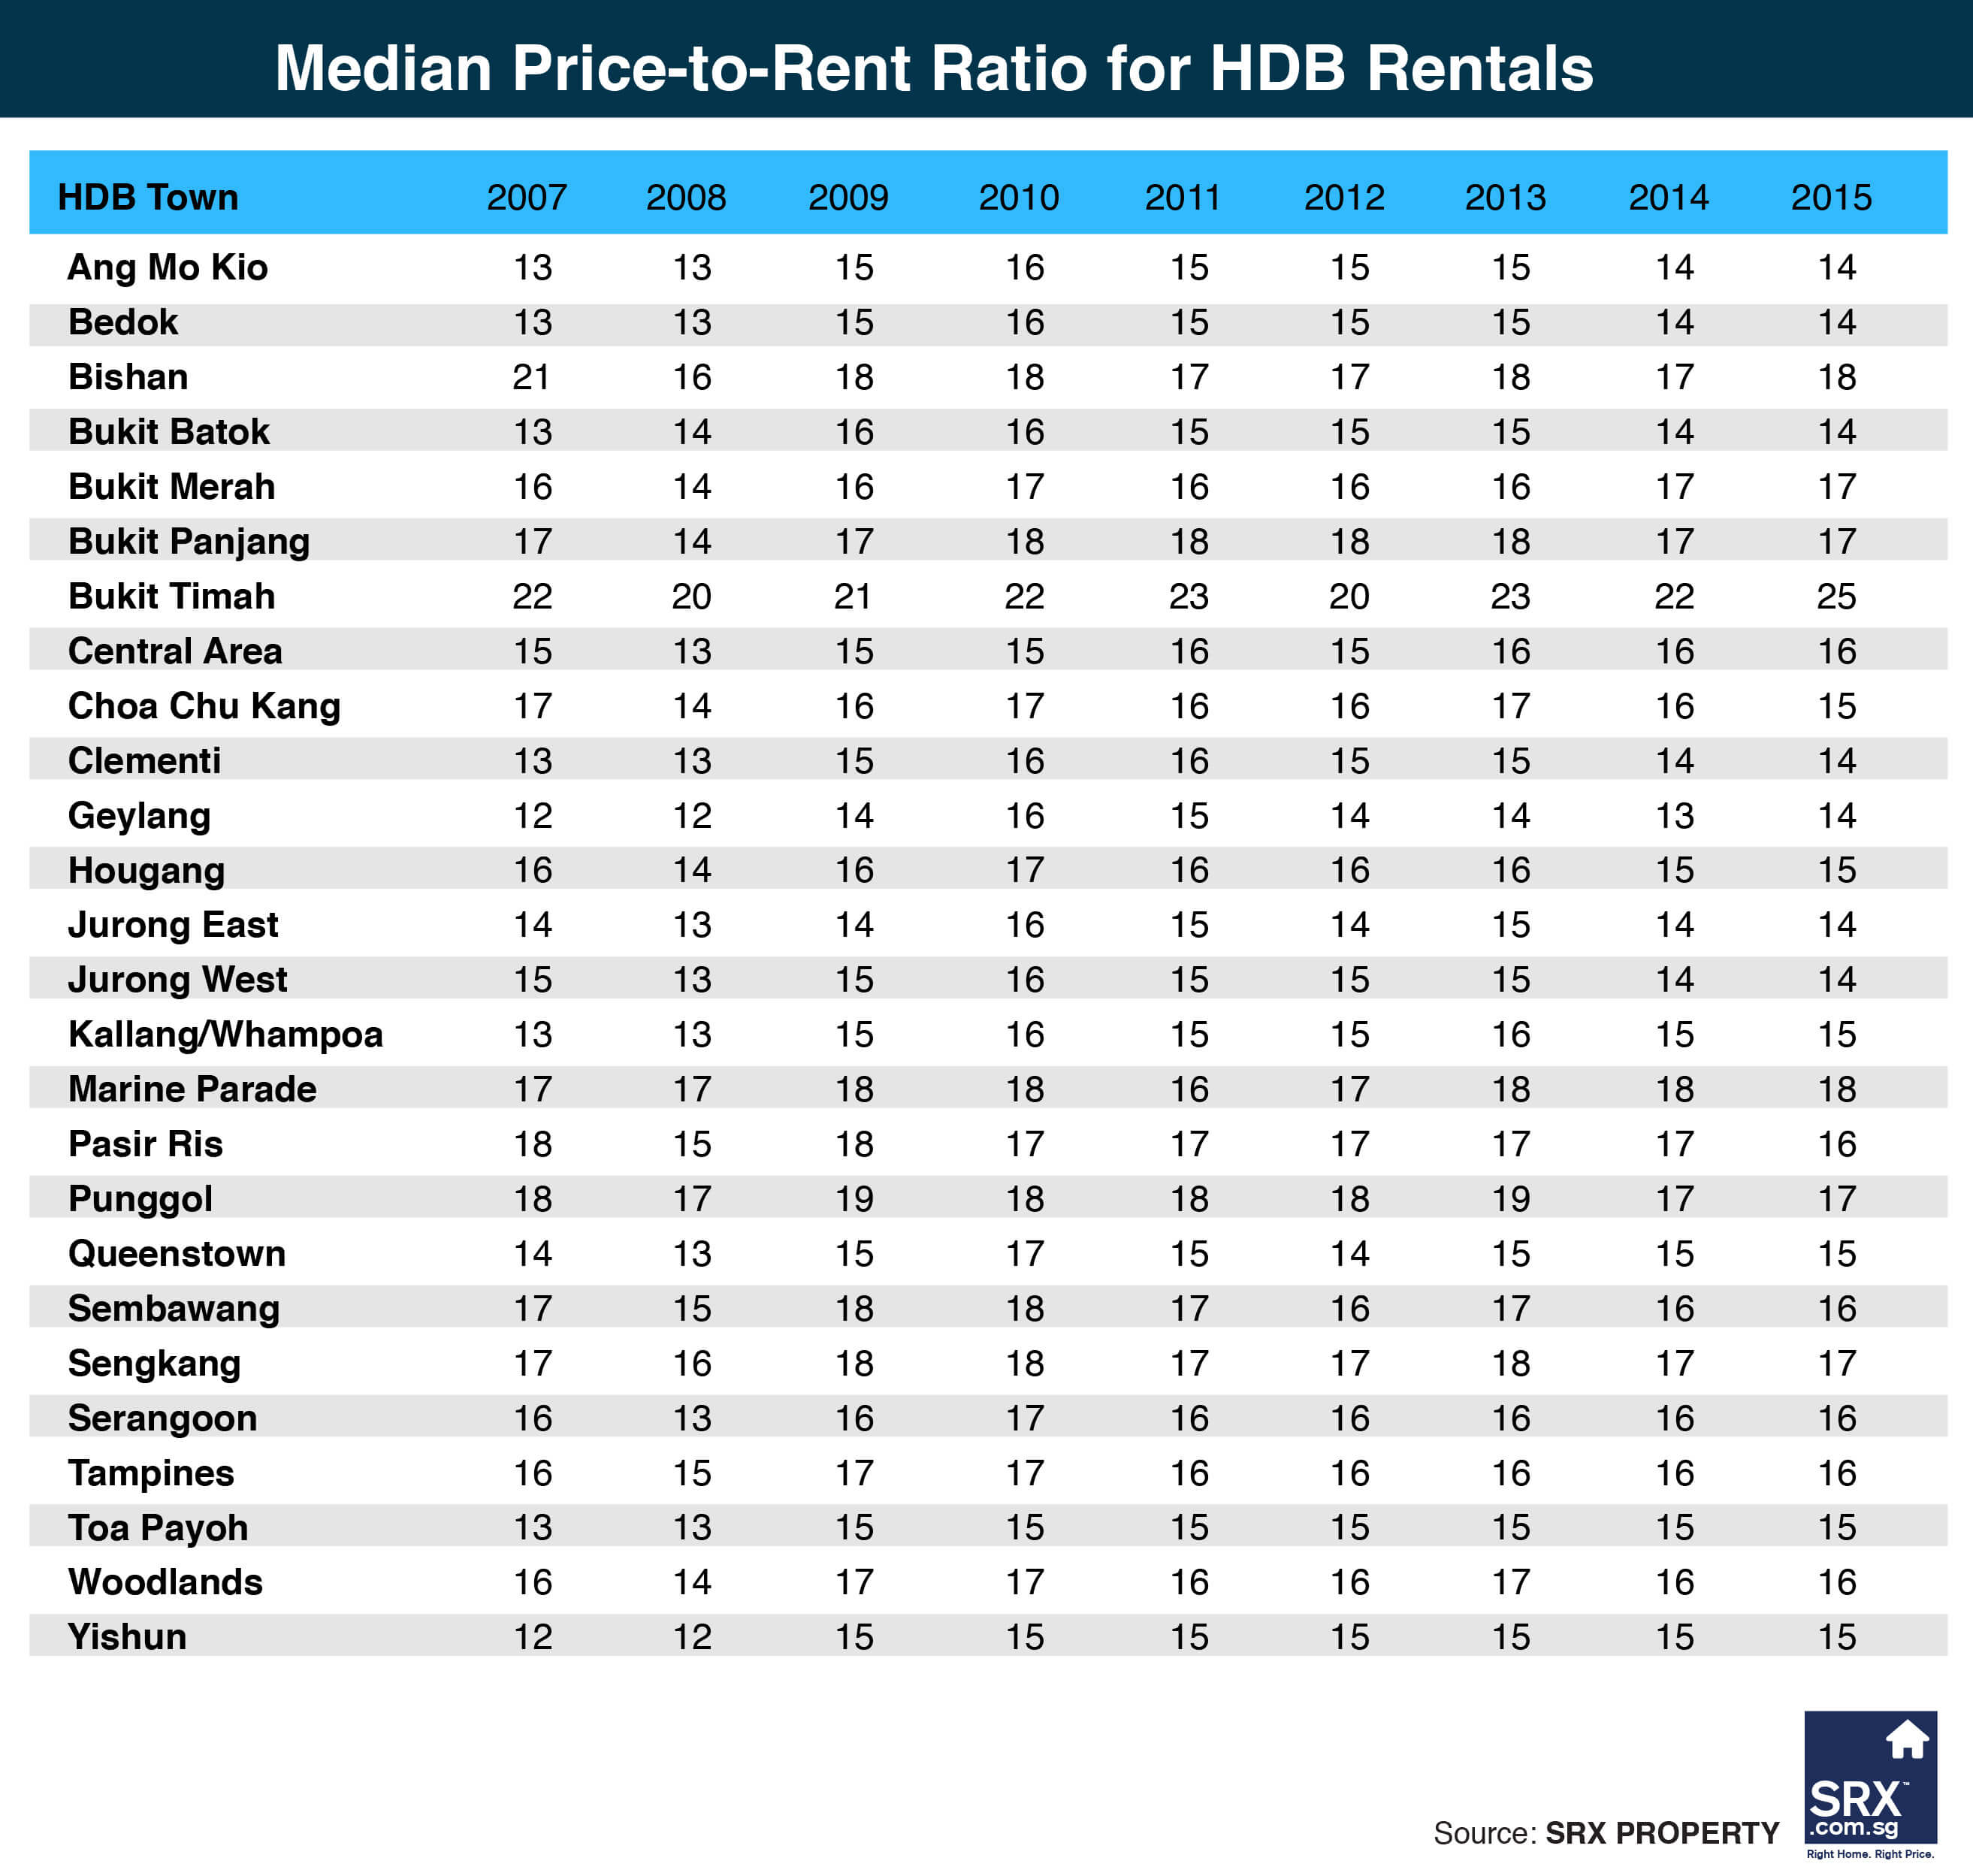 Rent Apts Online: Median Price-to-Rent Ratio For HDB Rentals And Private